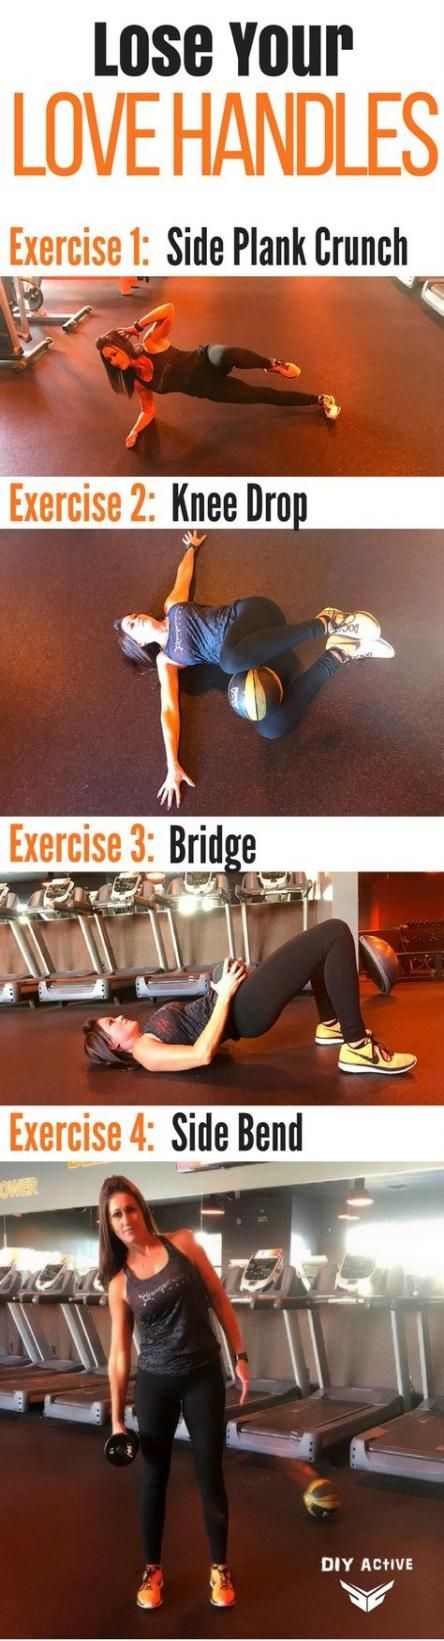 Trendy Fitness Motivation Curvy Gym Ideas #motivation #fitness